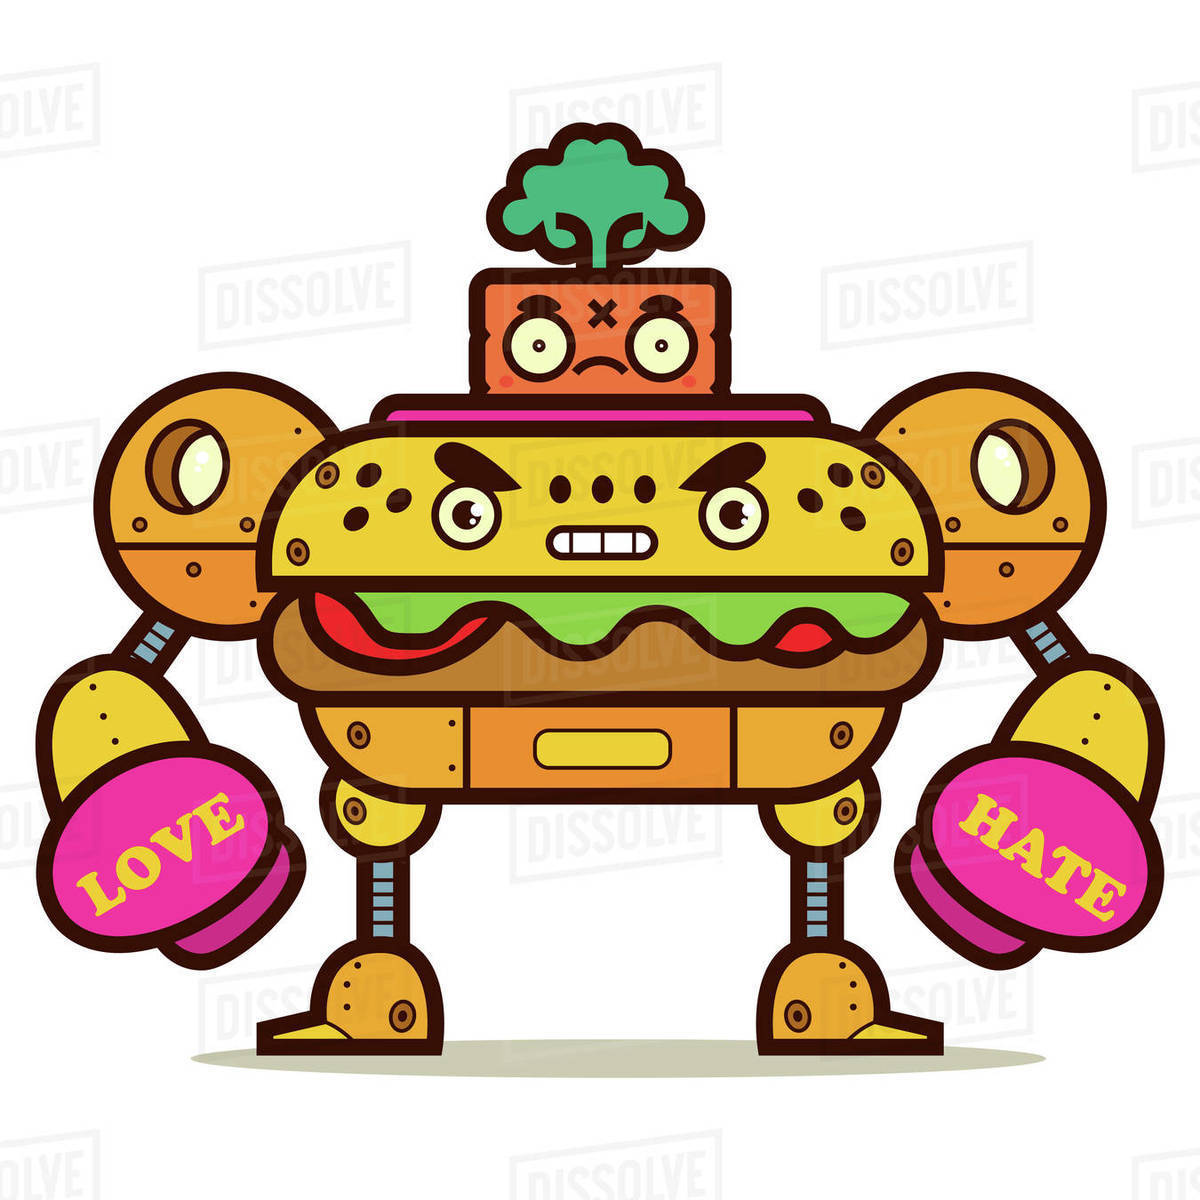 Illustration of robot against white background Royalty-free stock photo